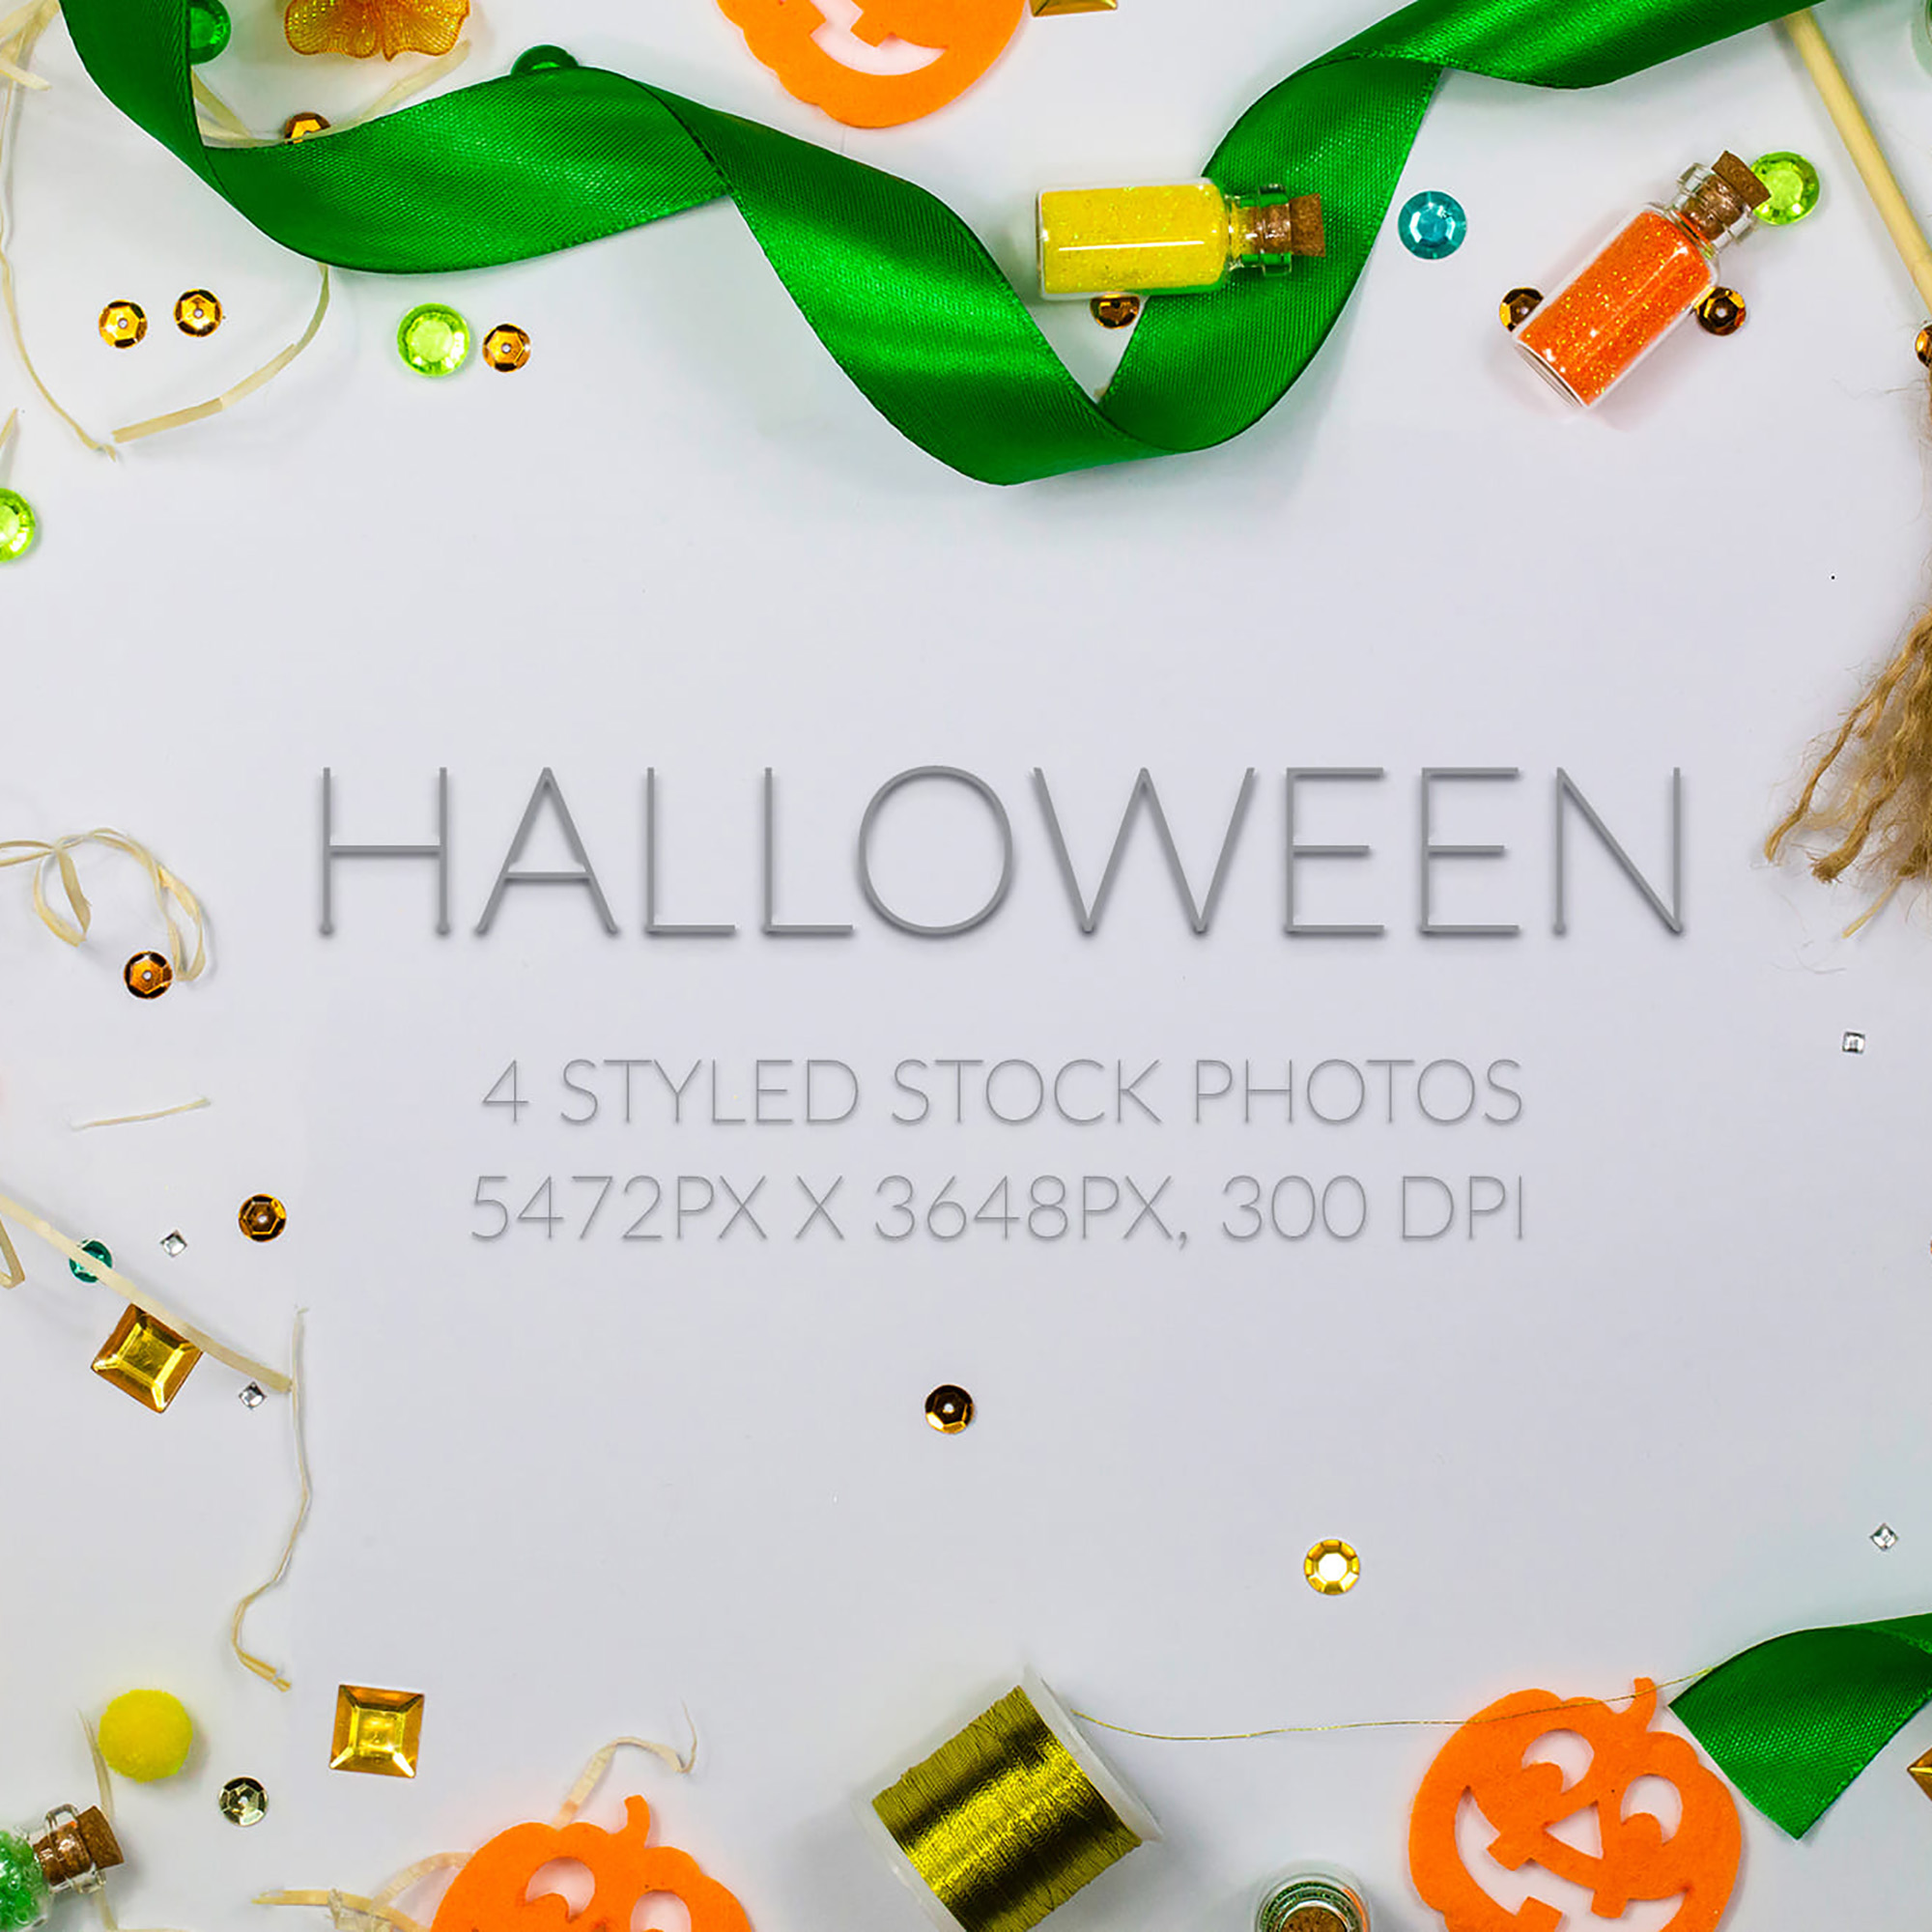 Skull PNG: Skull Textured Effect - Halloween Stock Photos